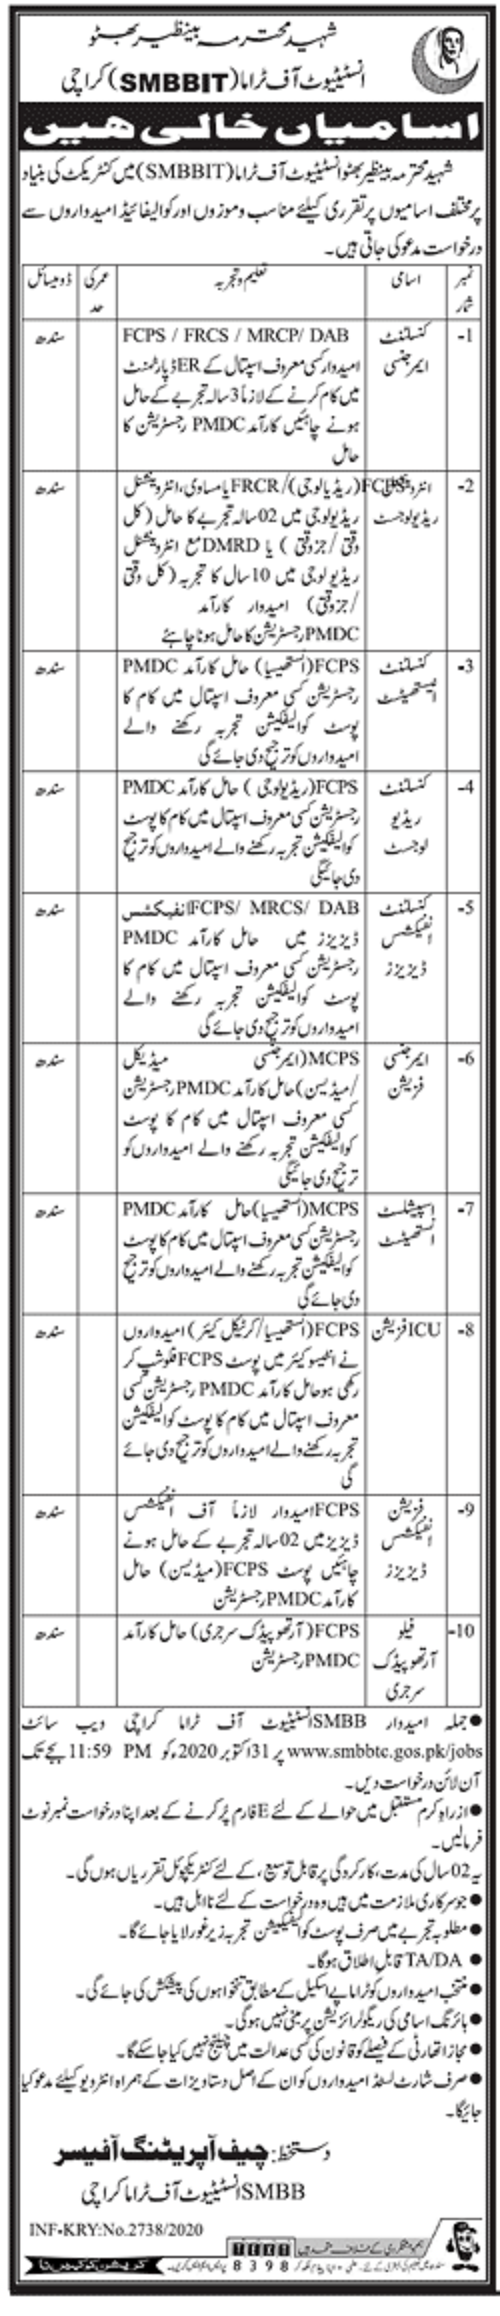 Shaheed Mohtarma Benazir Bhutto Institute of Trauma (SMBBIT) Karachi Jobs  2020 for Consultants, Physician, Radiologist, Anesthetist & Other Apply  Online Latest